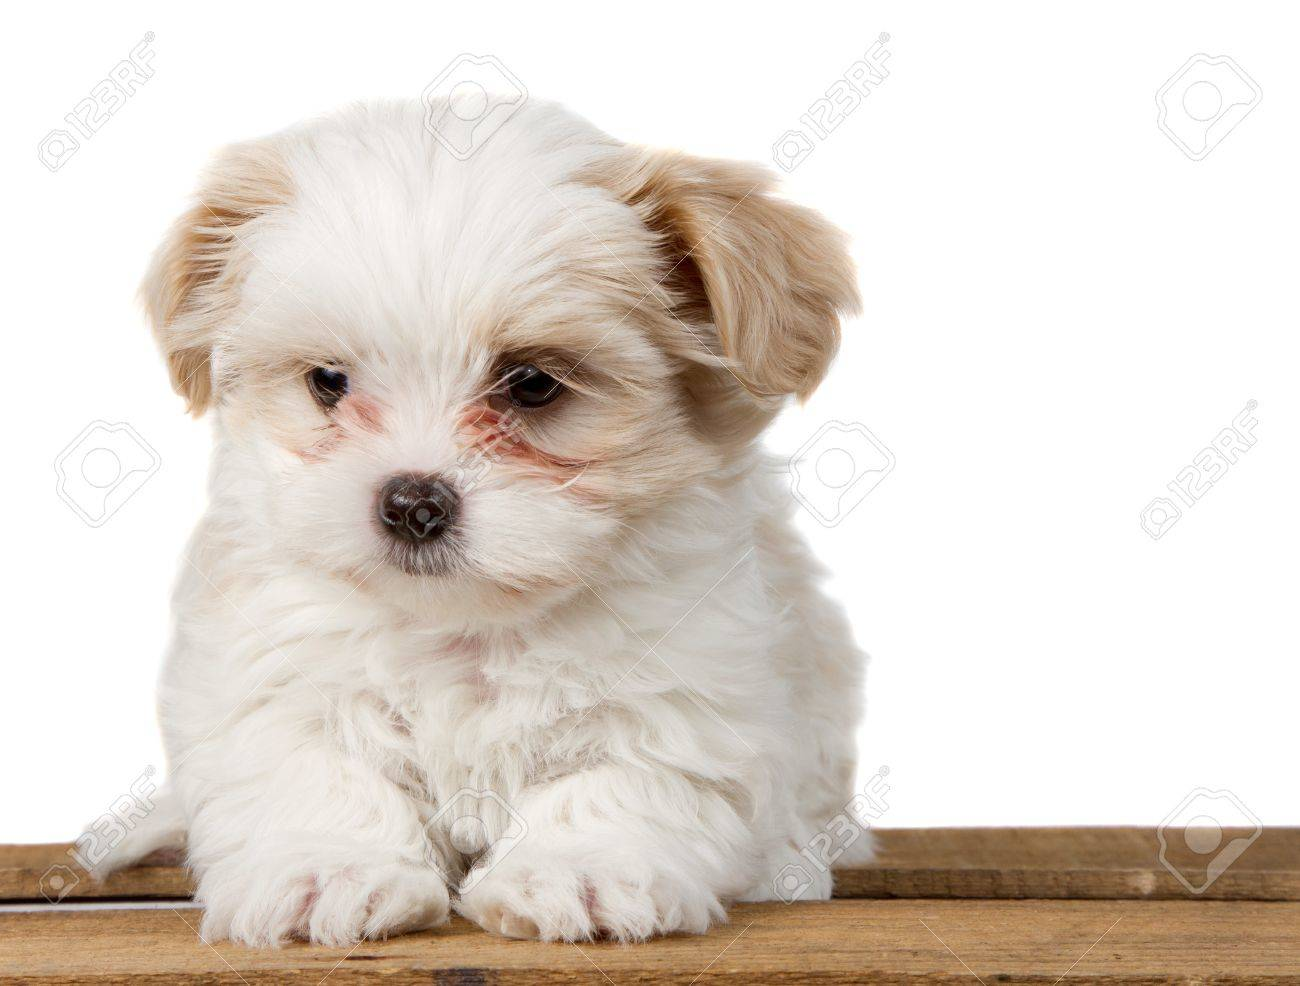 A Small White Shih Tzu Puppy Sitting On A Plank With A Sad Look